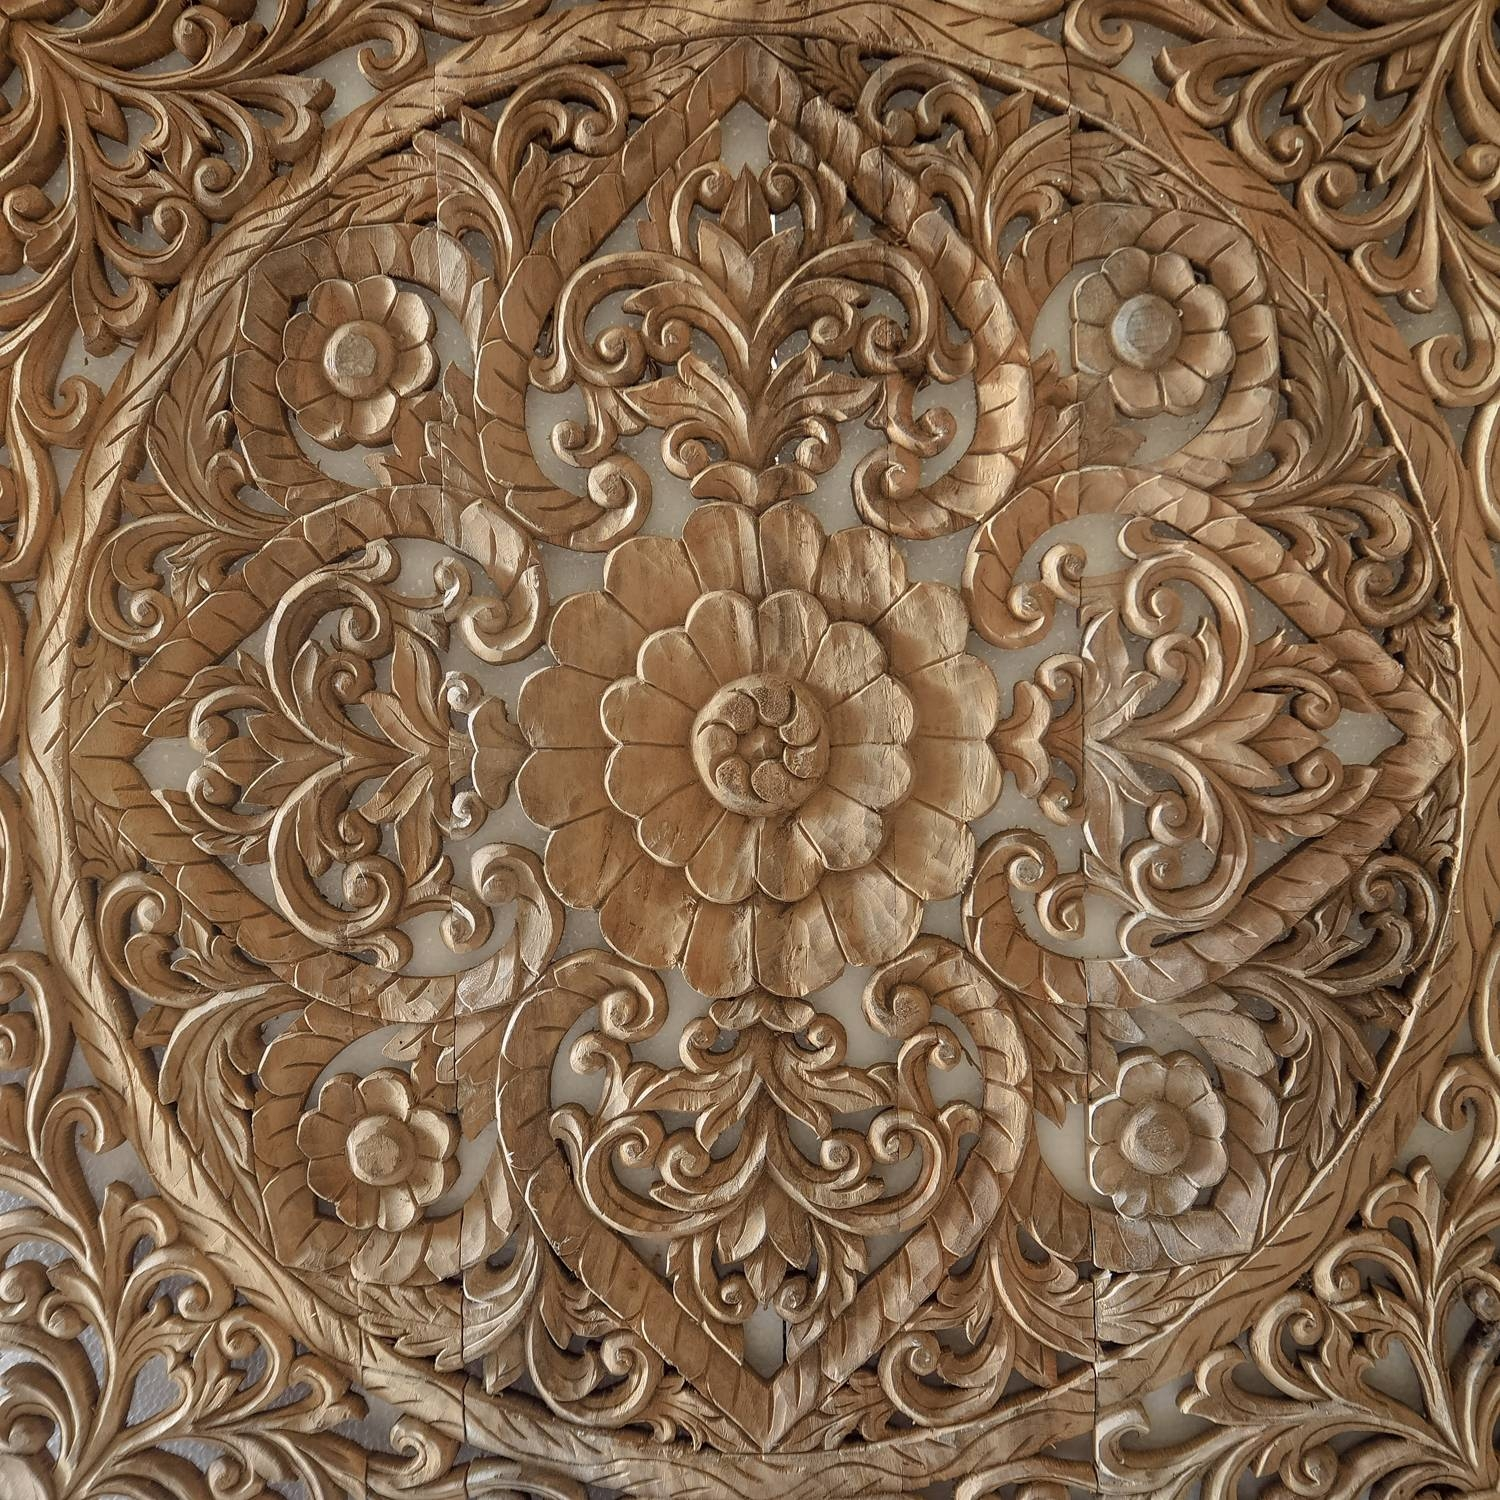 Hand Carved Wall Panel From Bali – Siam Sawadee In 2017 Wood Wall Art Panels (View 13 of 20)